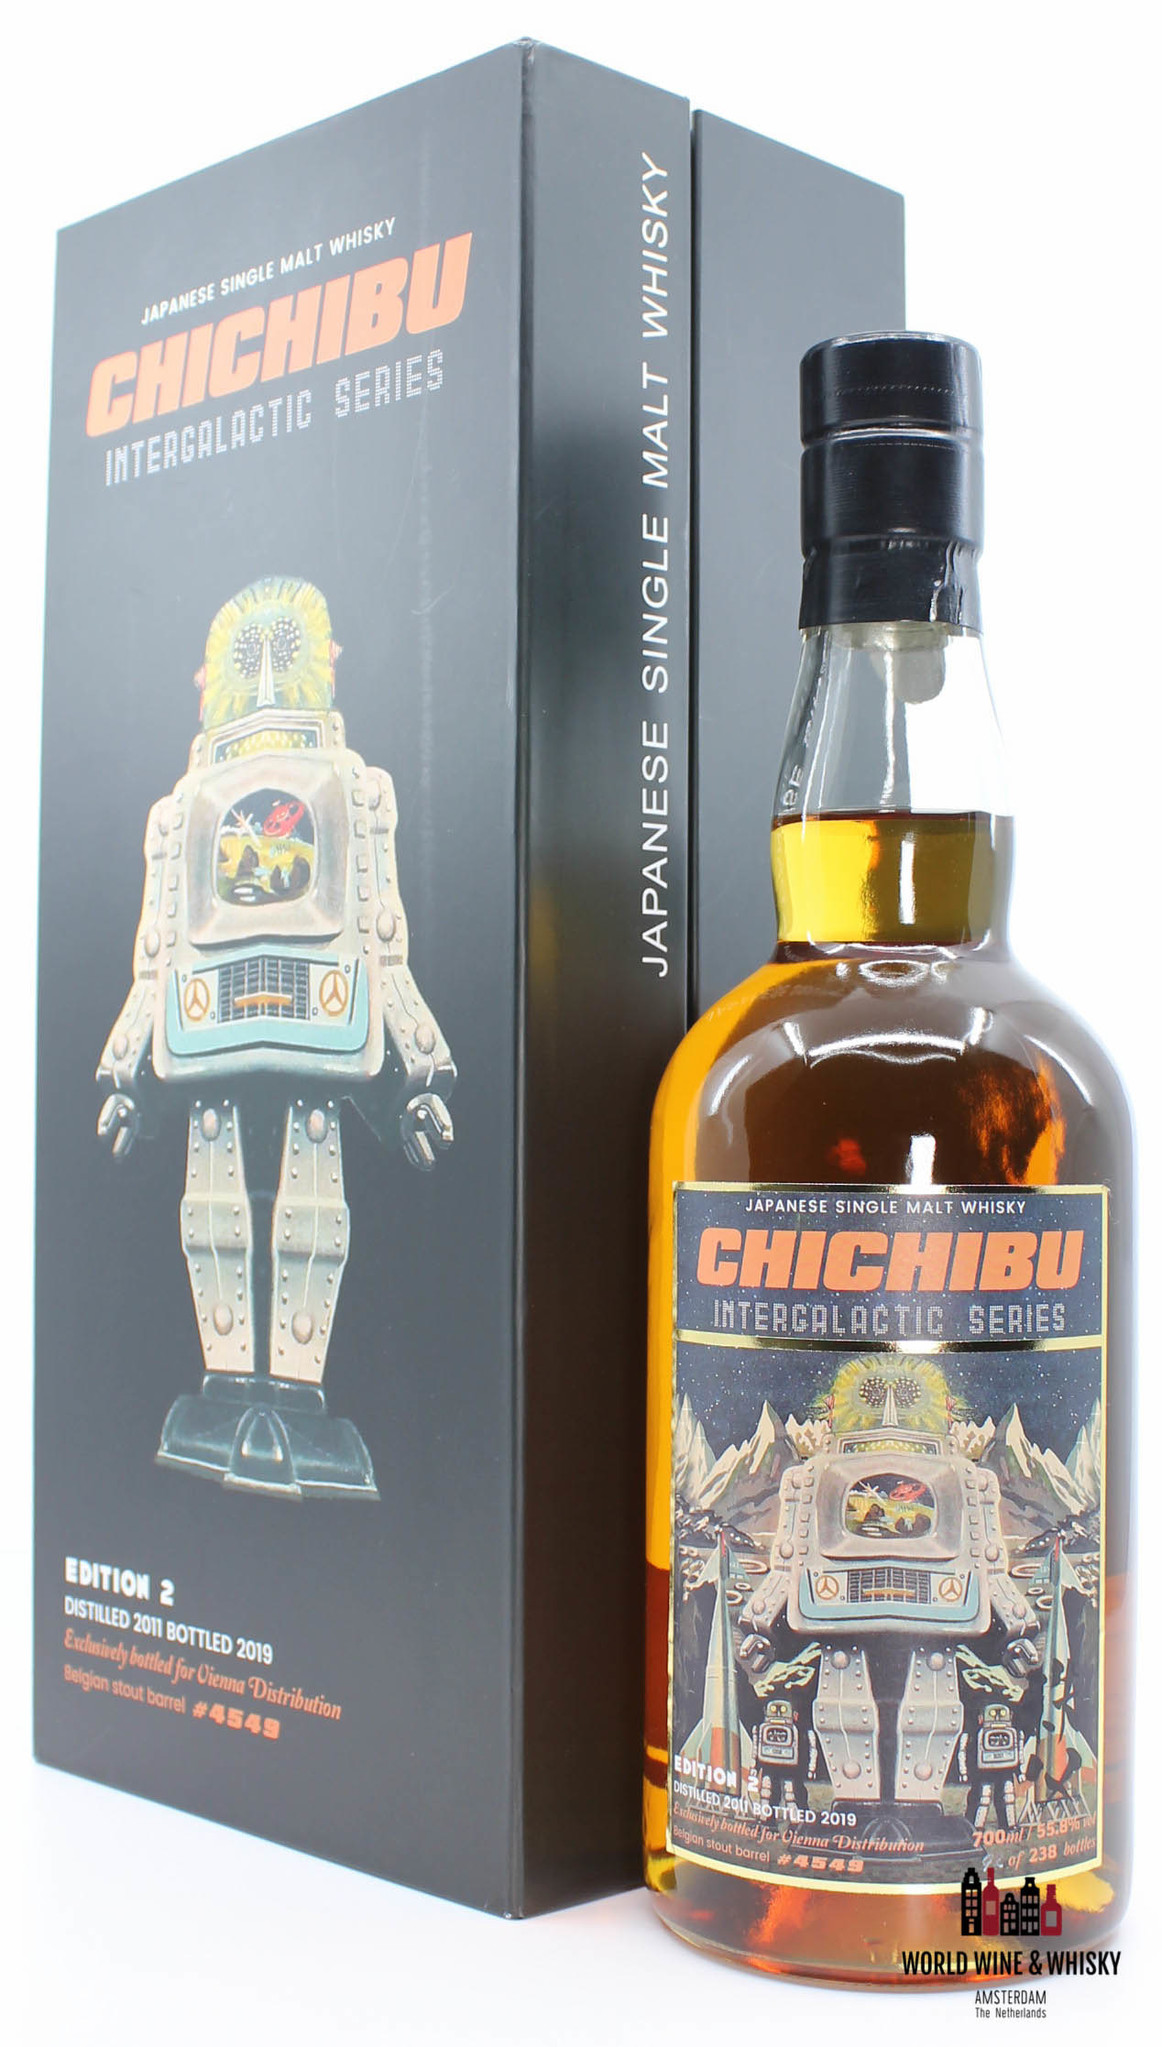 Chichibu Chichibu Intergalactic Series - Edition 2 - 8 Years Old 2011 2019 Cask 4549 55.8%